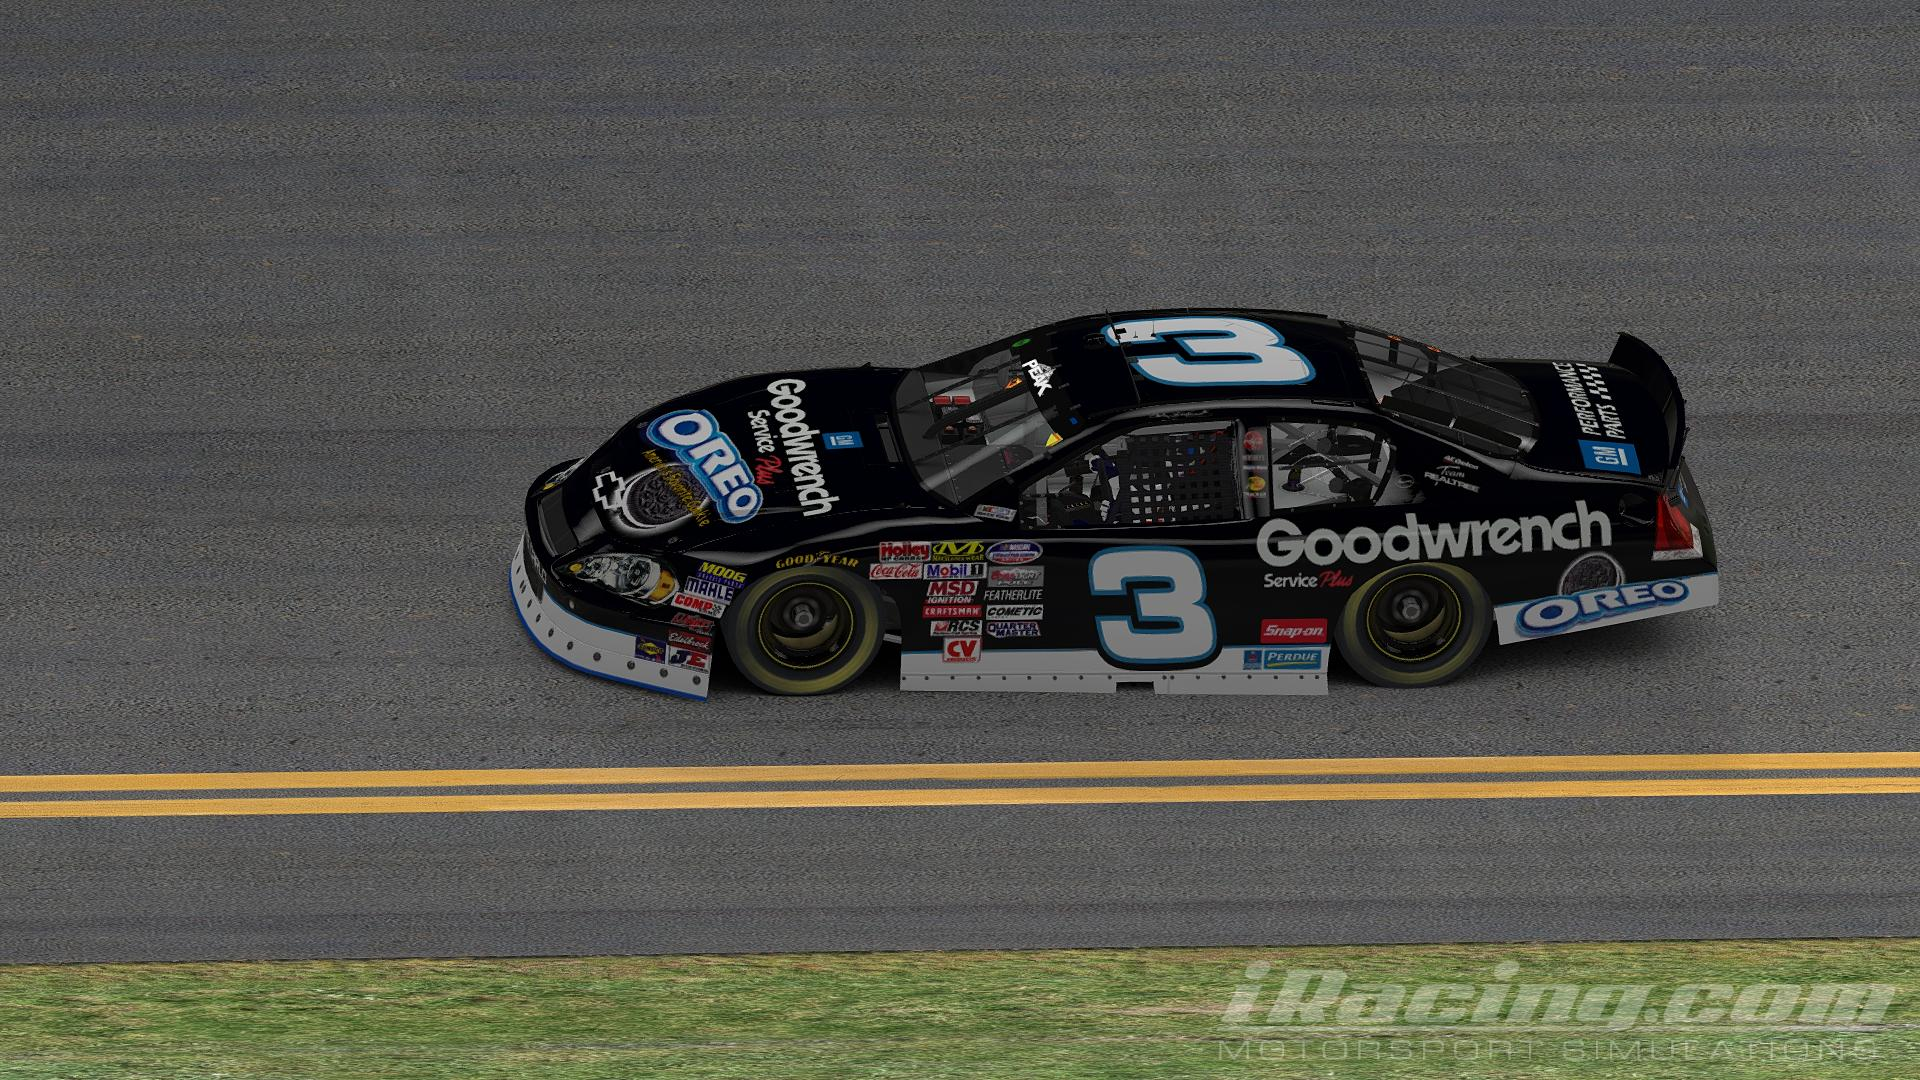 Preview of 2001 Dale Earnhardt Sr GM Goodwrench OREO - Budweiser Shootout by Brennan MaGee